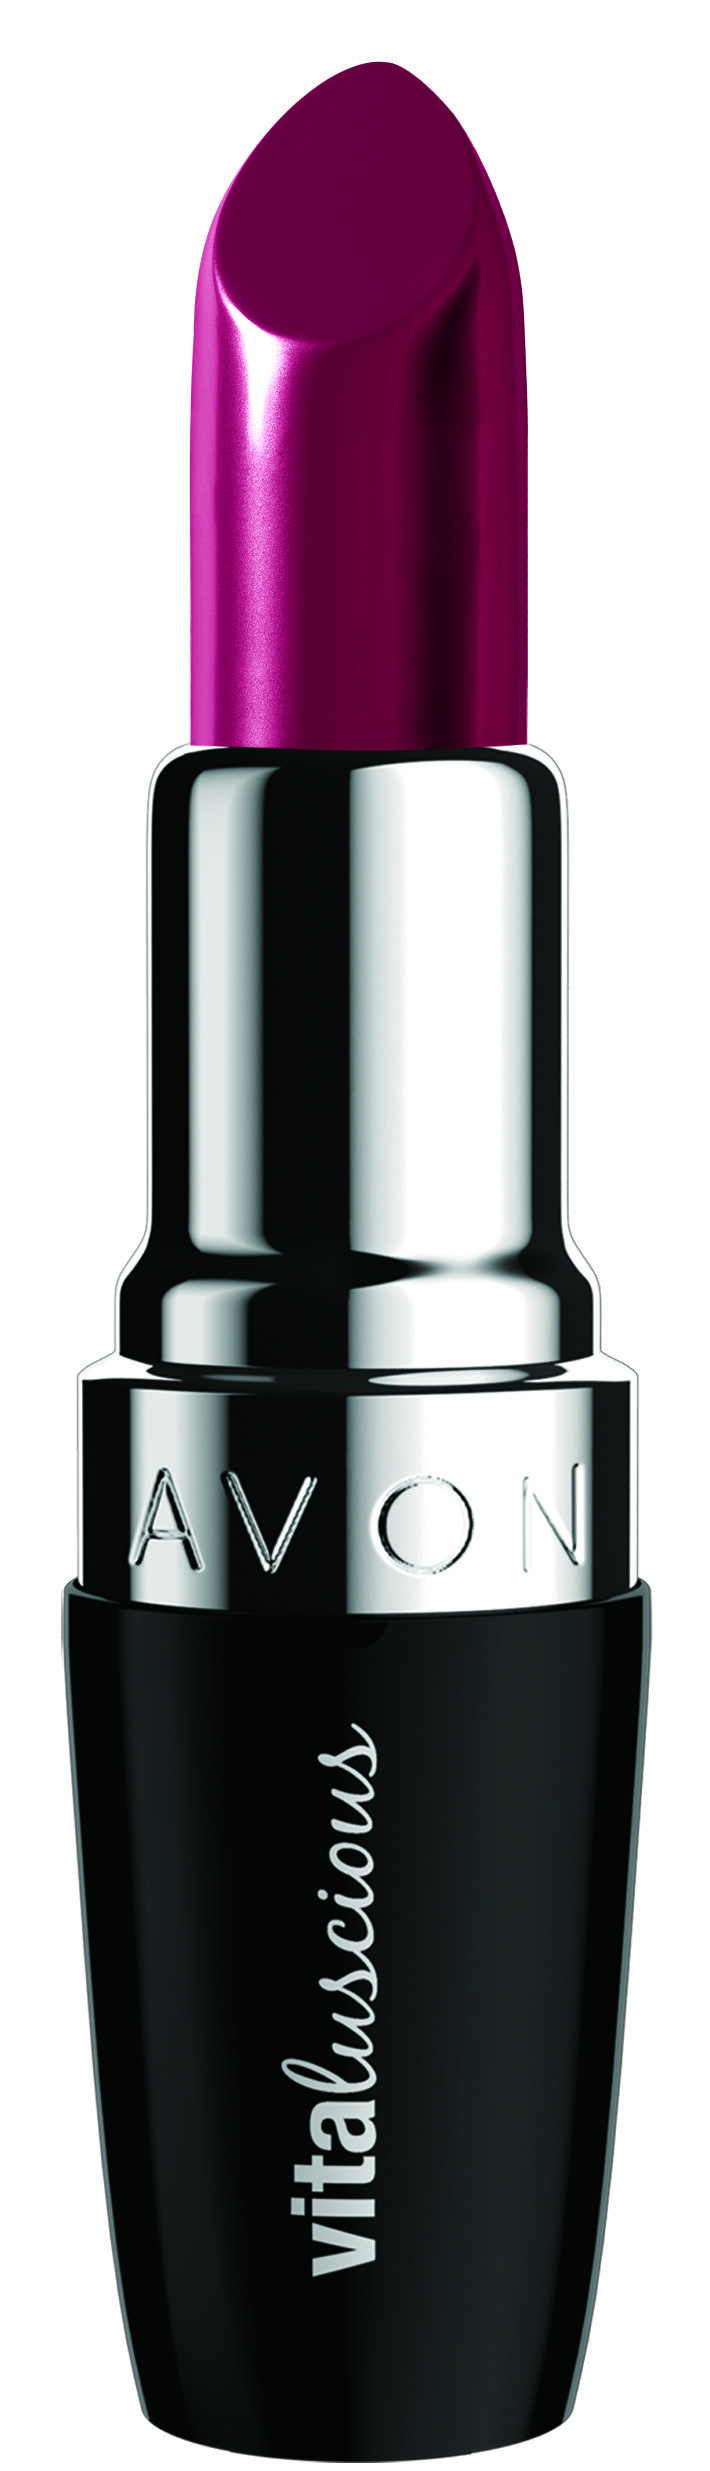 AVON lipsticks - AVON PRODUCTS!!! Great SALES & FREE SHIPPING!